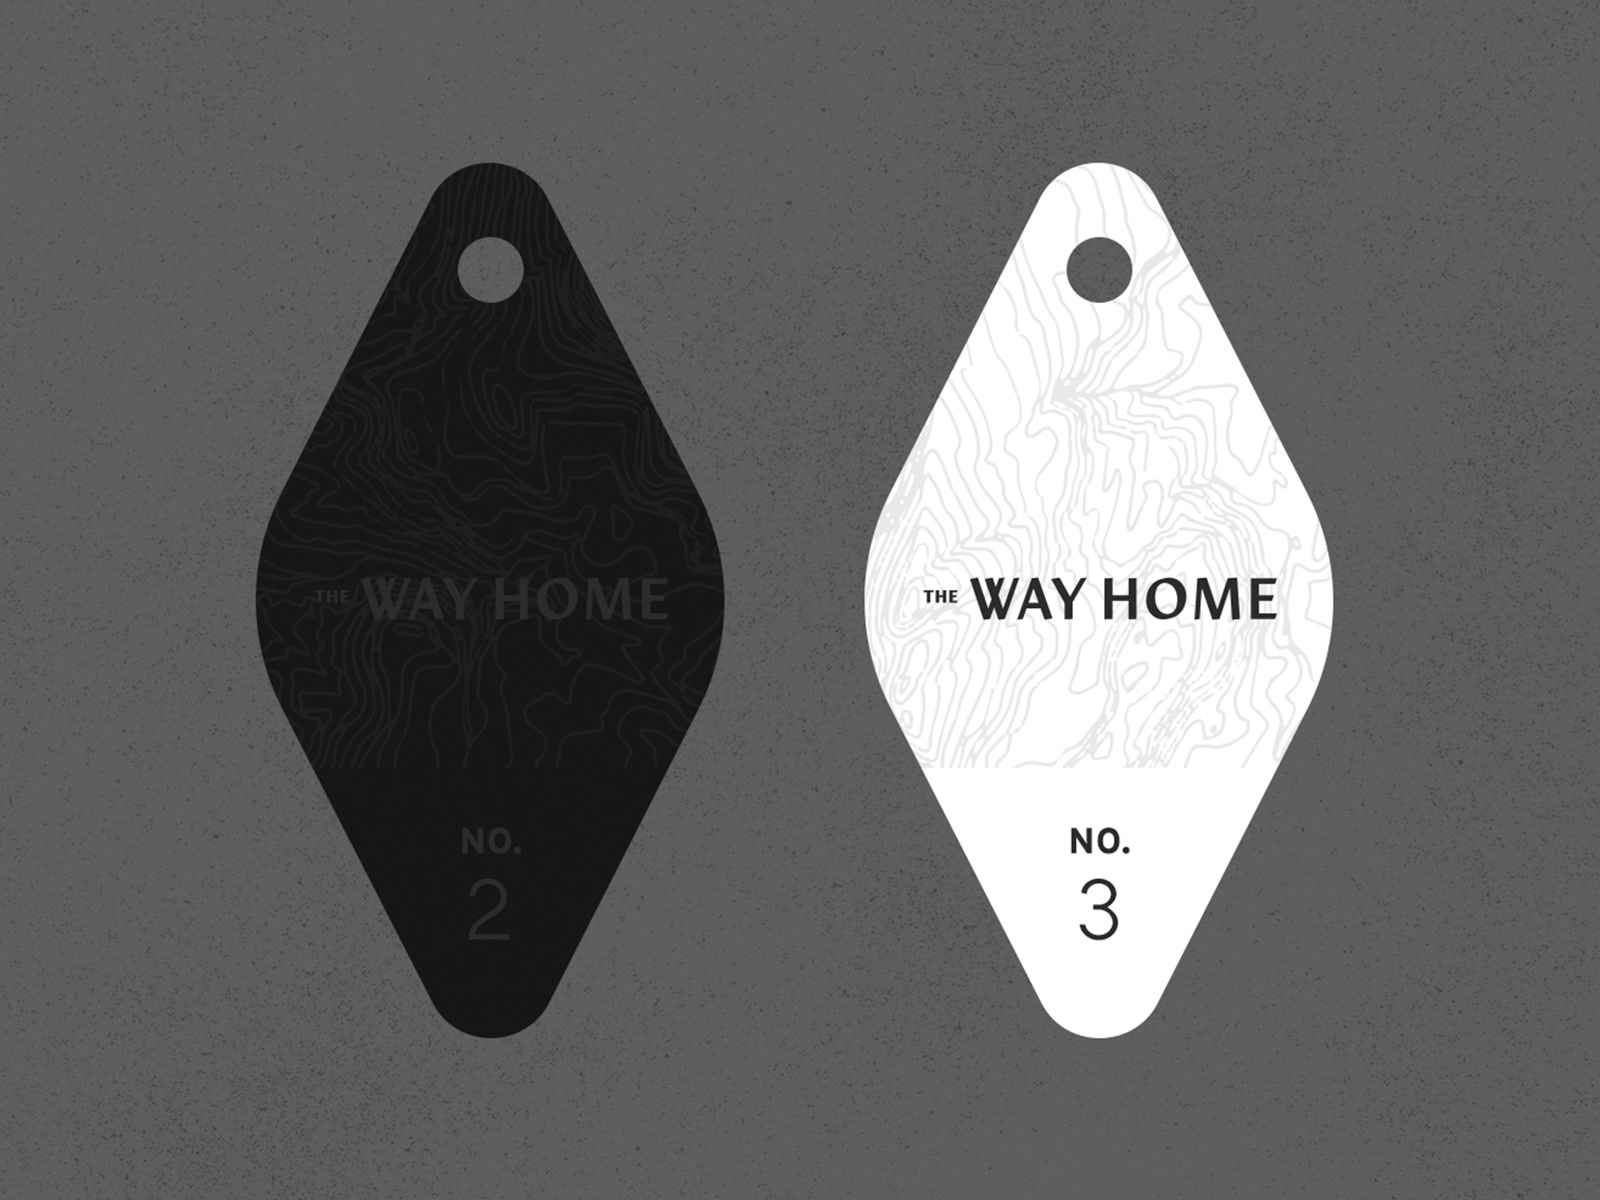 Wsco thewayhome dribbble 4